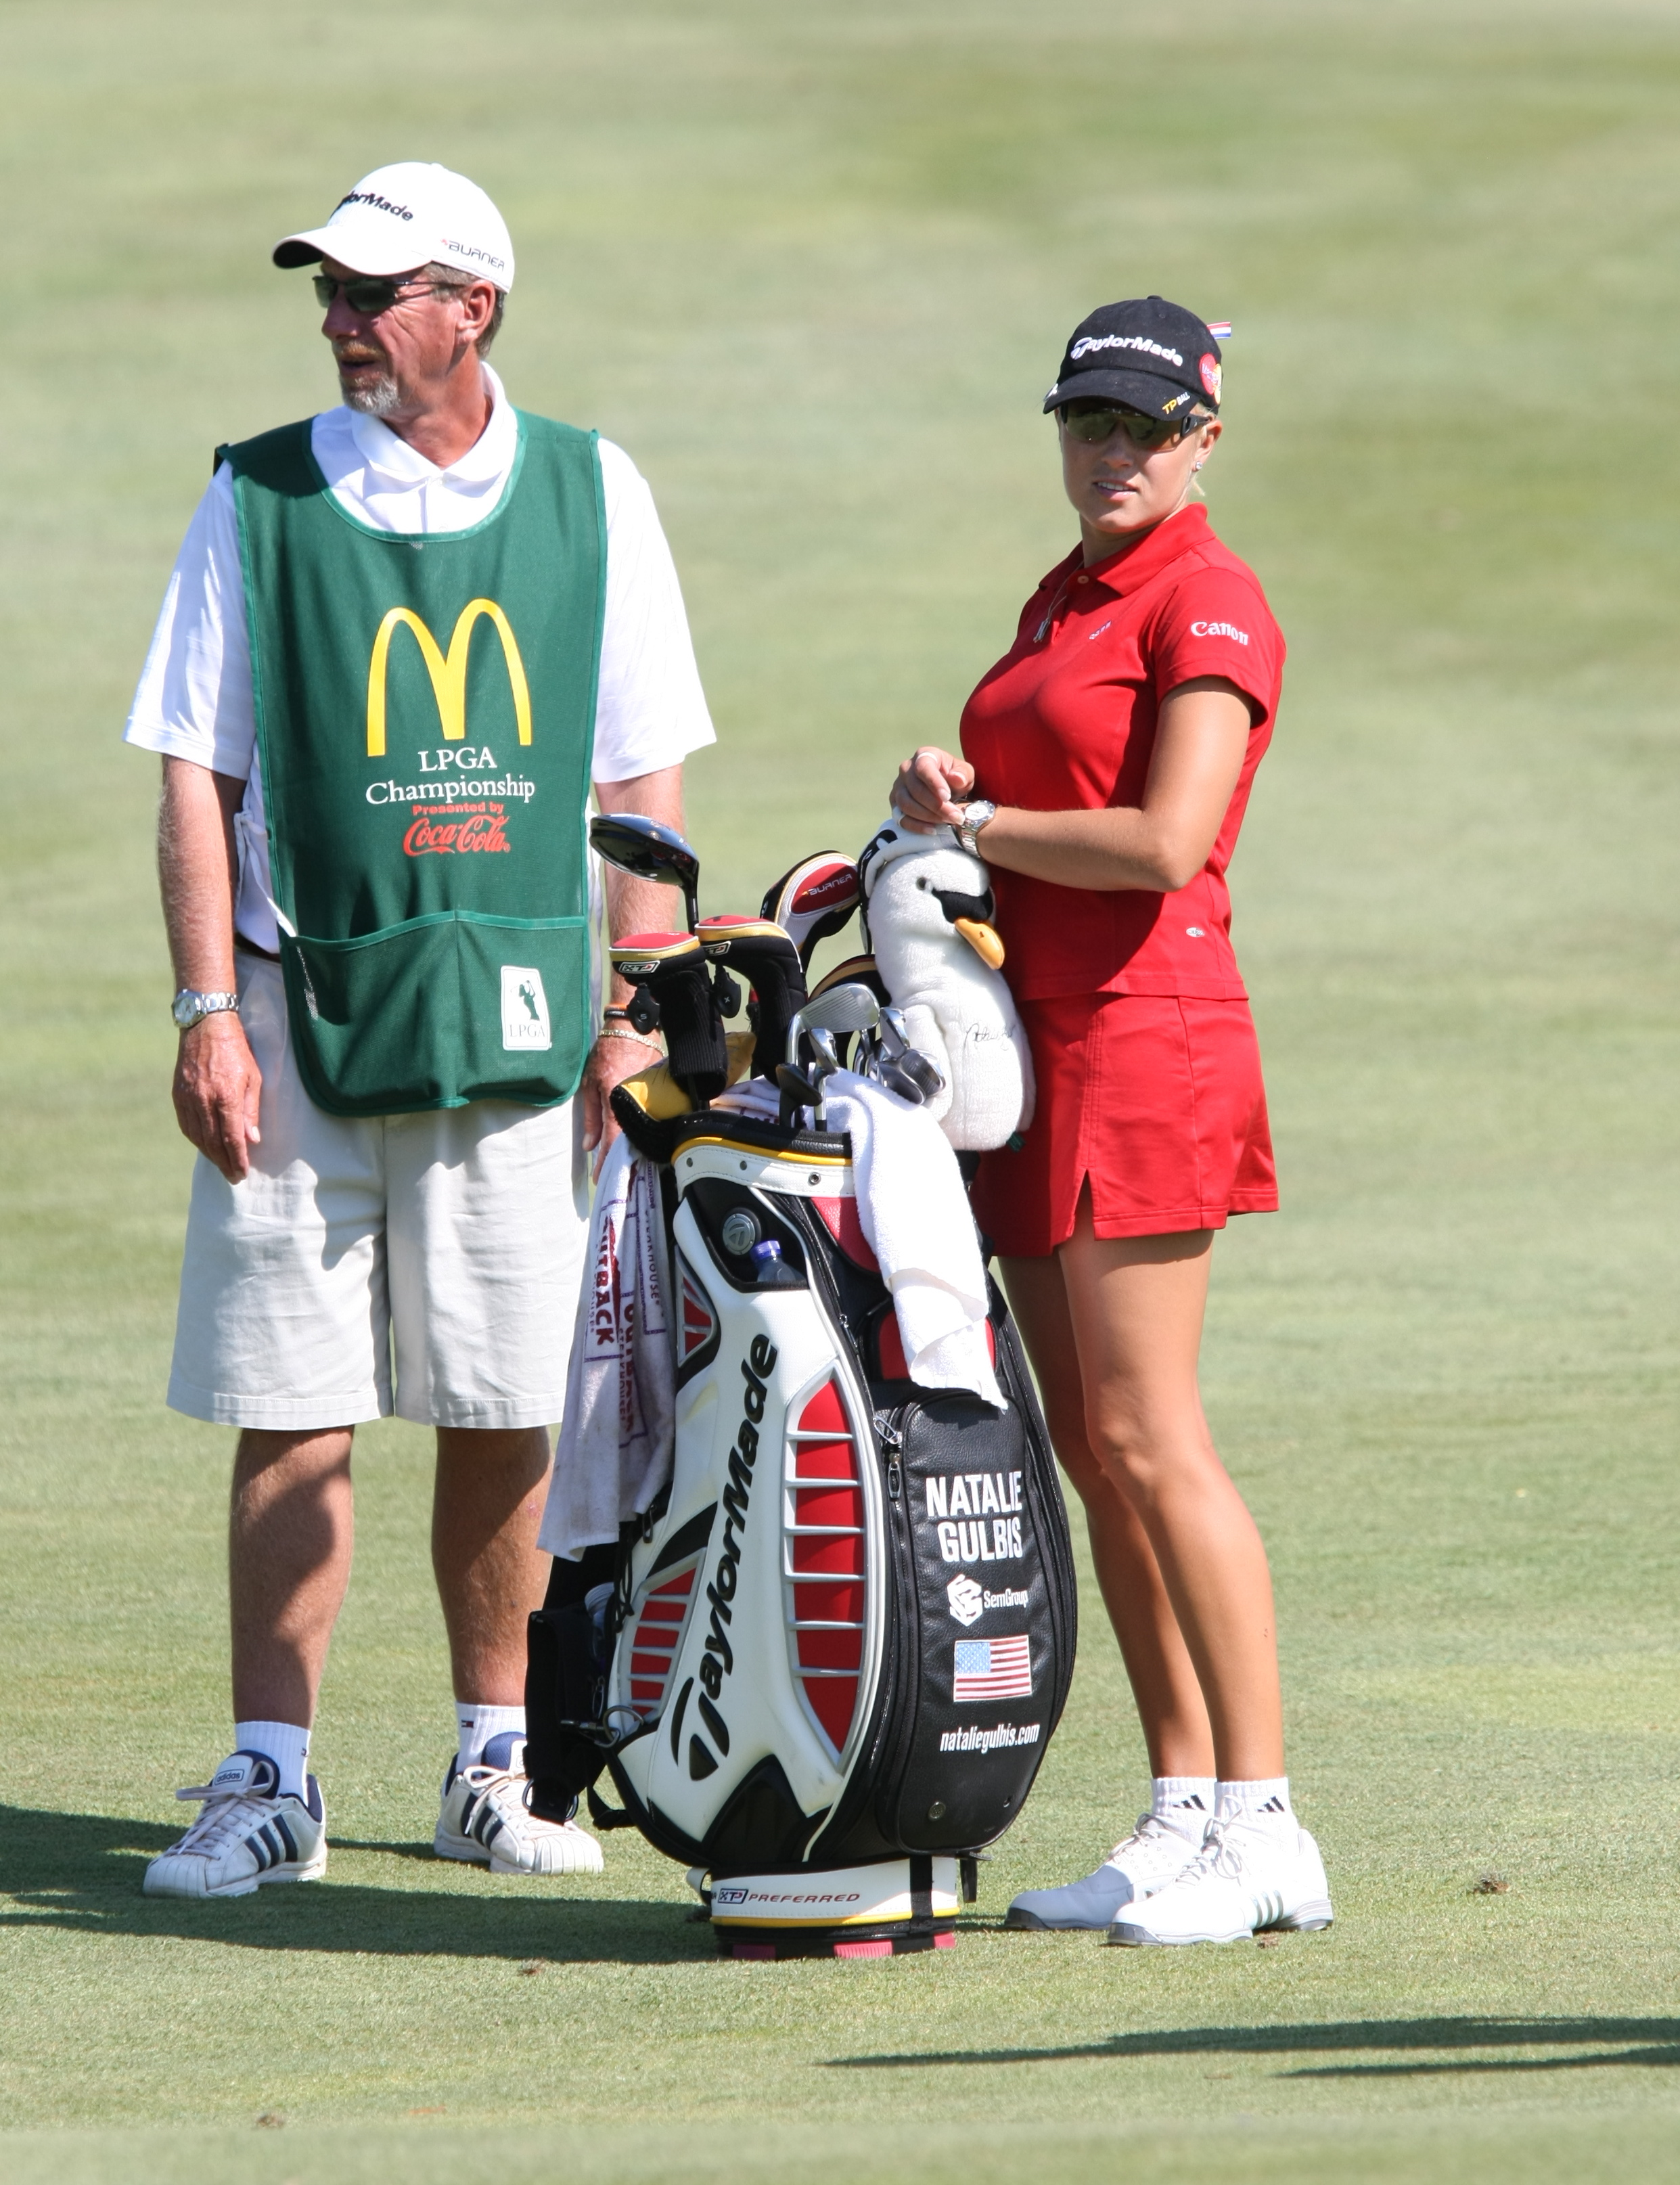 file 2008 lpga championship natalie gulbis with her caddie 1 jpg wikimedia commons. Black Bedroom Furniture Sets. Home Design Ideas